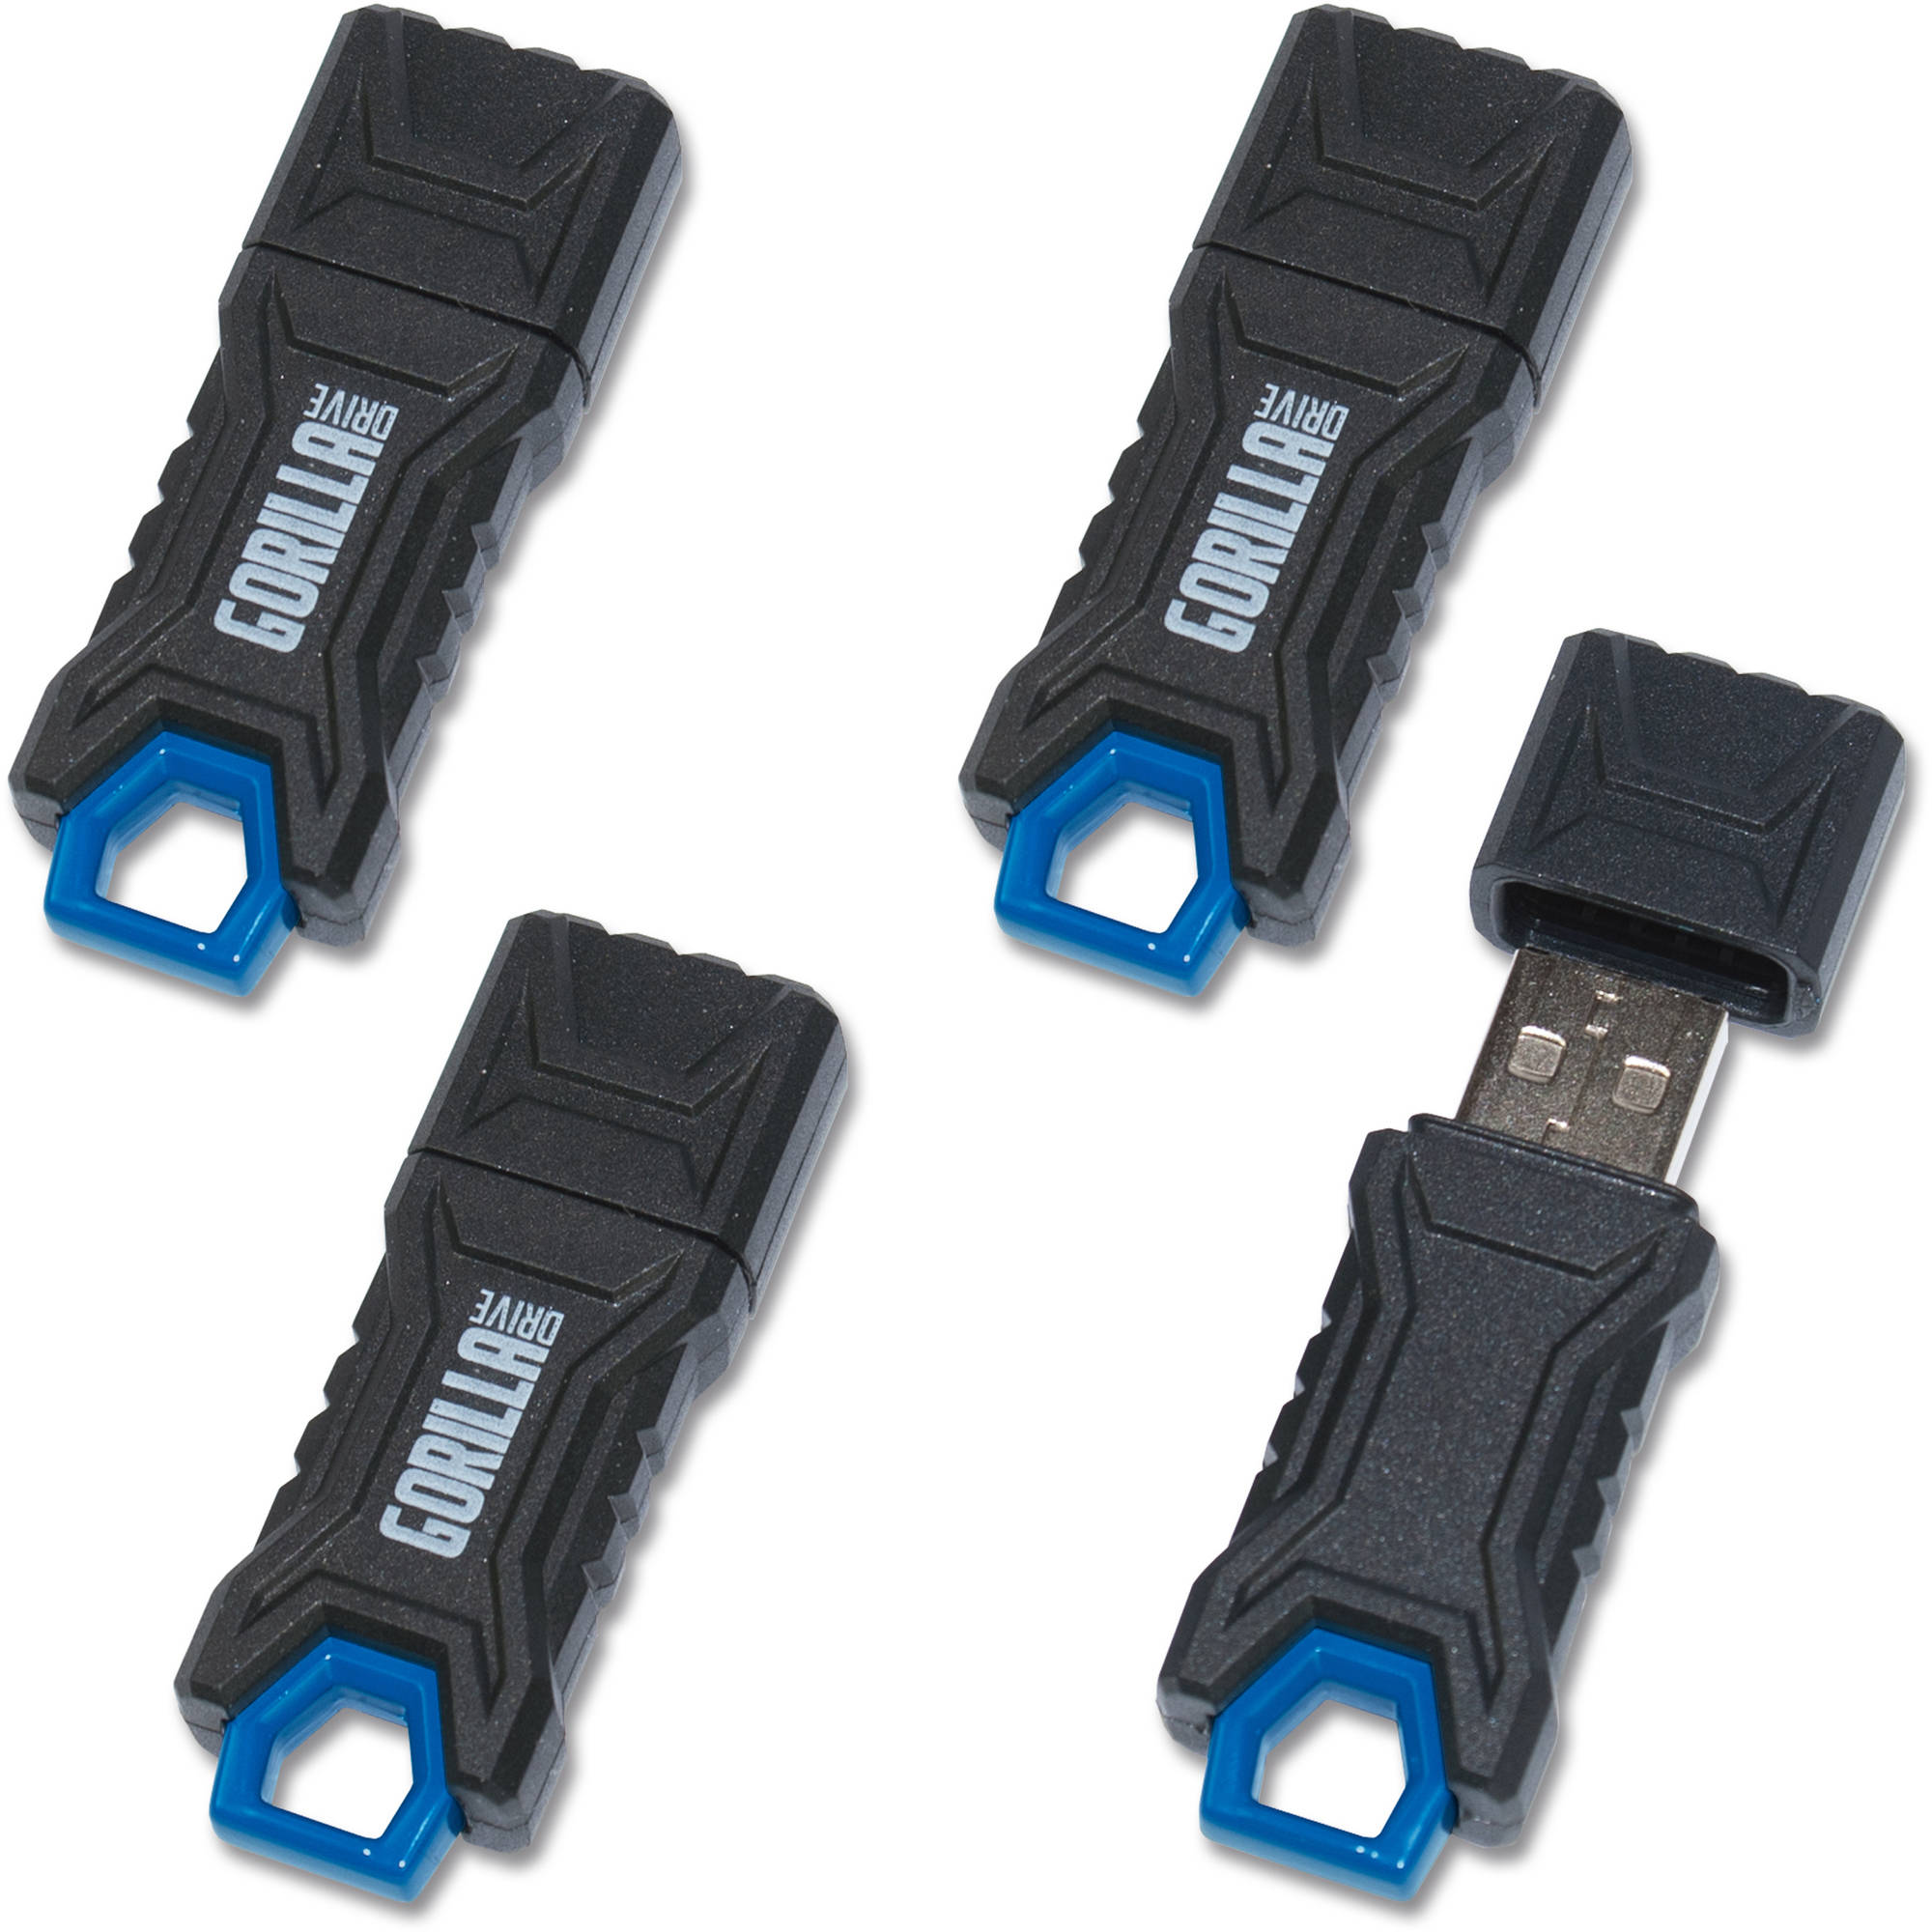 EP GorillaDrive 64GB Rugged USB Flash Drive, 4-Pack